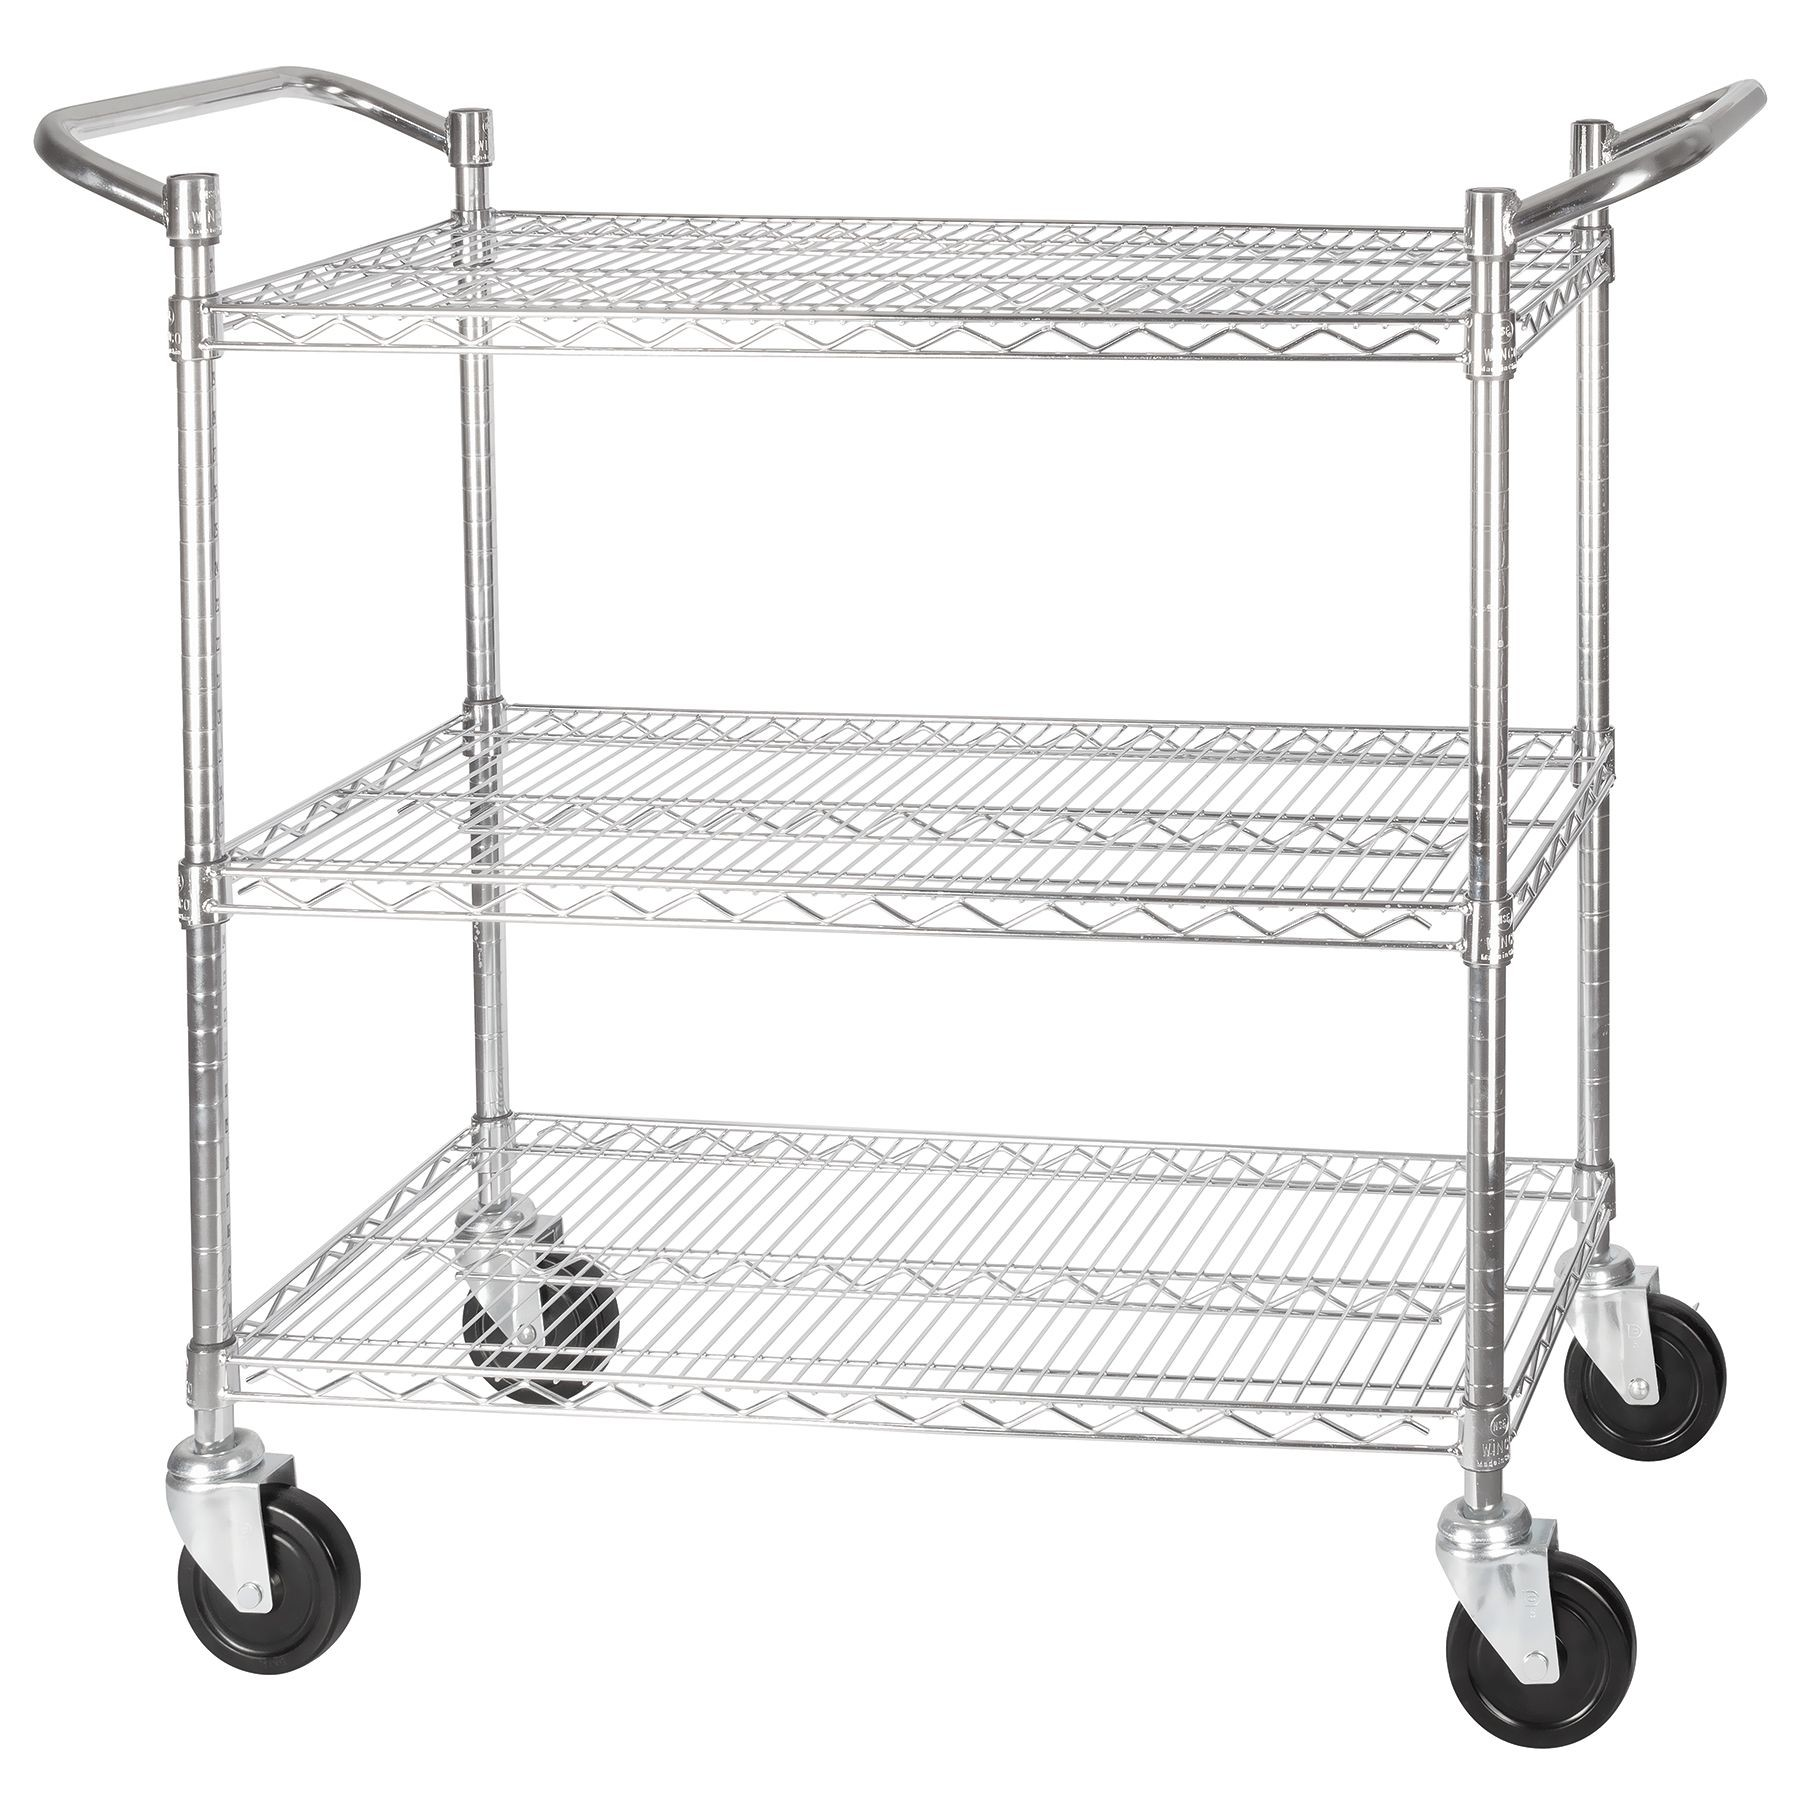 Winco Vccd 2448b Chrome Plated 3 Tier Wire Shelving Cart 24 X 48 Lionsdeal